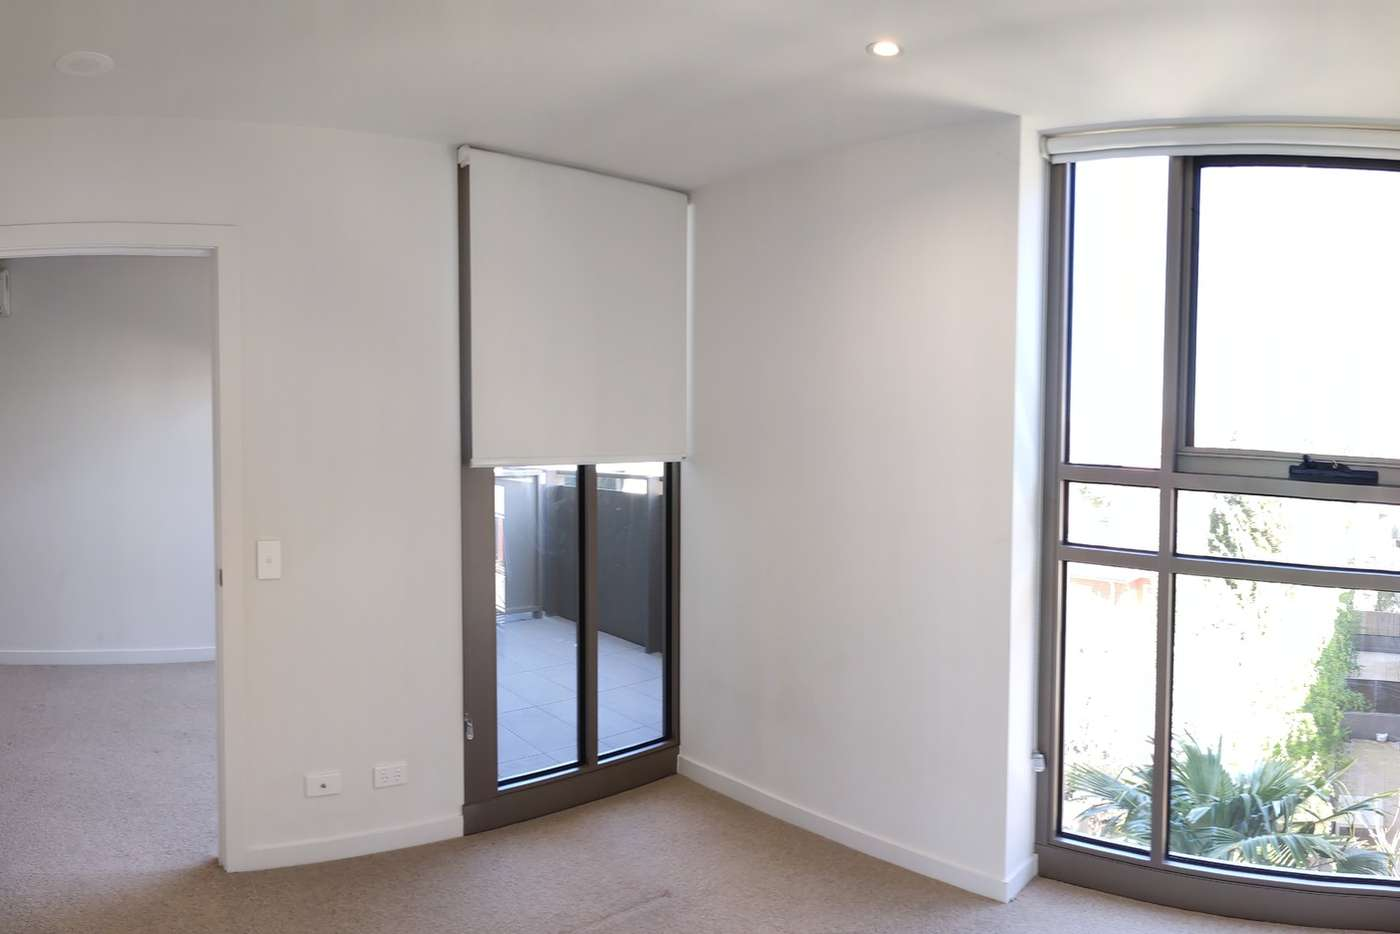 Sixth view of Homely apartment listing, 216/15 Bond Street, Caulfield North VIC 3161